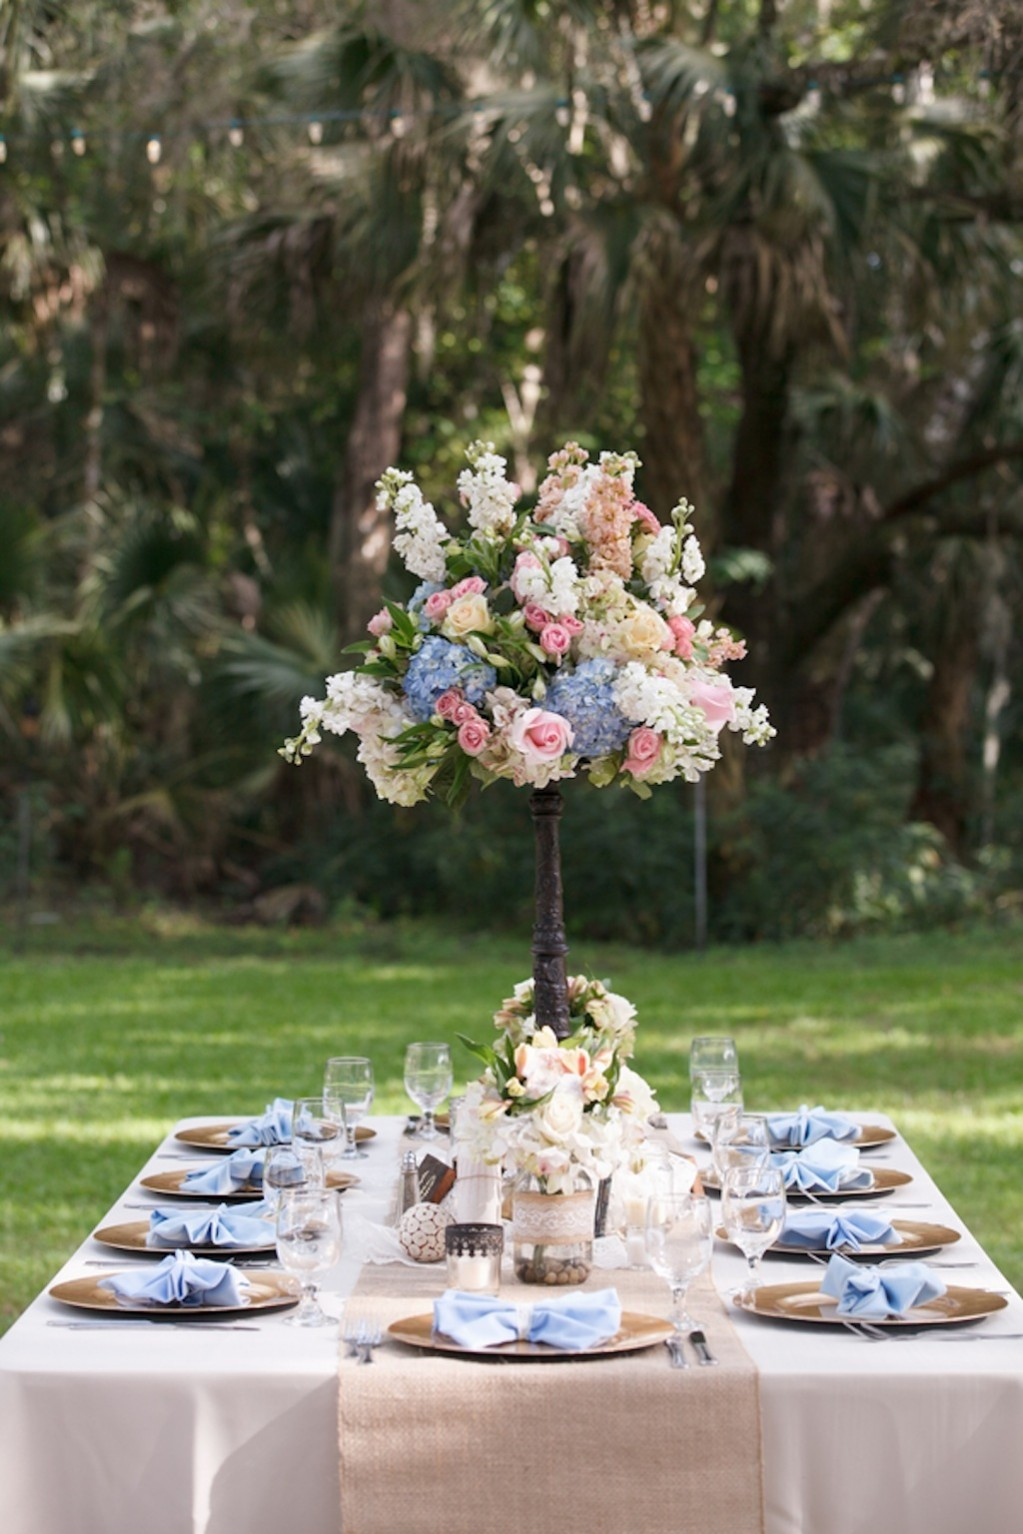 Light Blue Vintage Lace and Tall Wedding Centerpieces